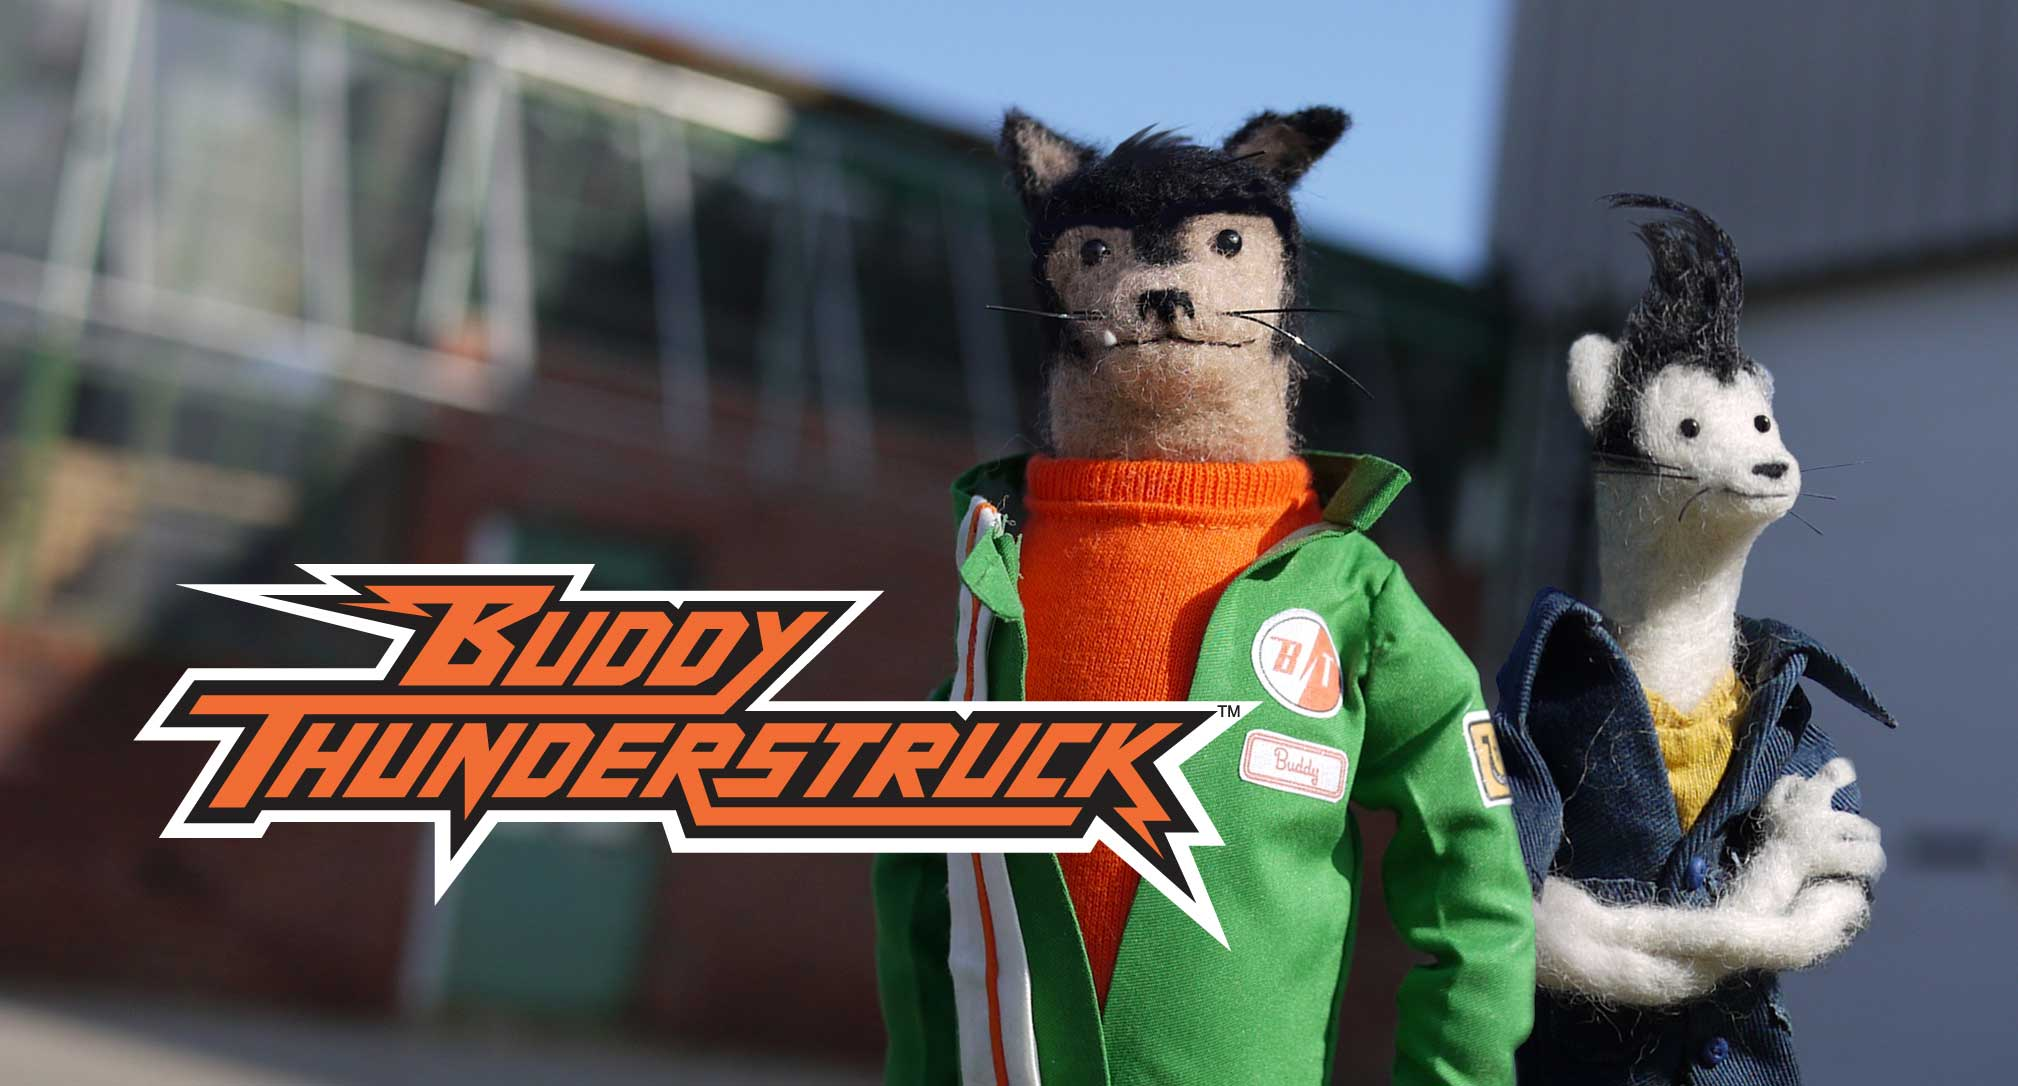 Buddy-Thunderstruck-Photo-Credit-American-Greetings-Entertainment